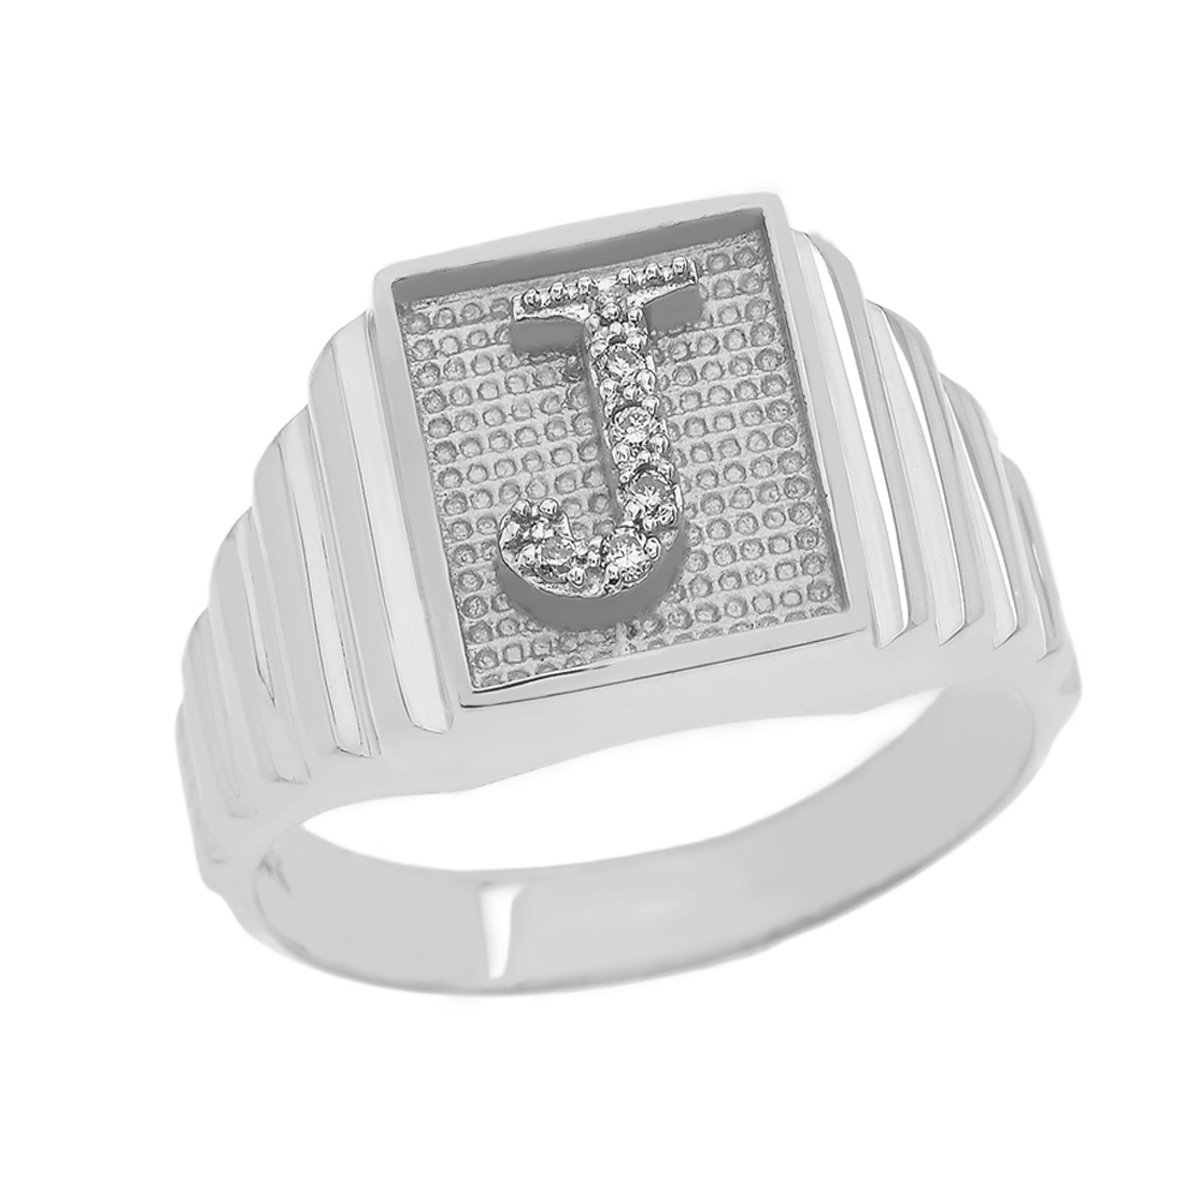 Men's 925 Sterling Silver Layered Band Square Face Diamond Initial Letter Ring (Size 9)